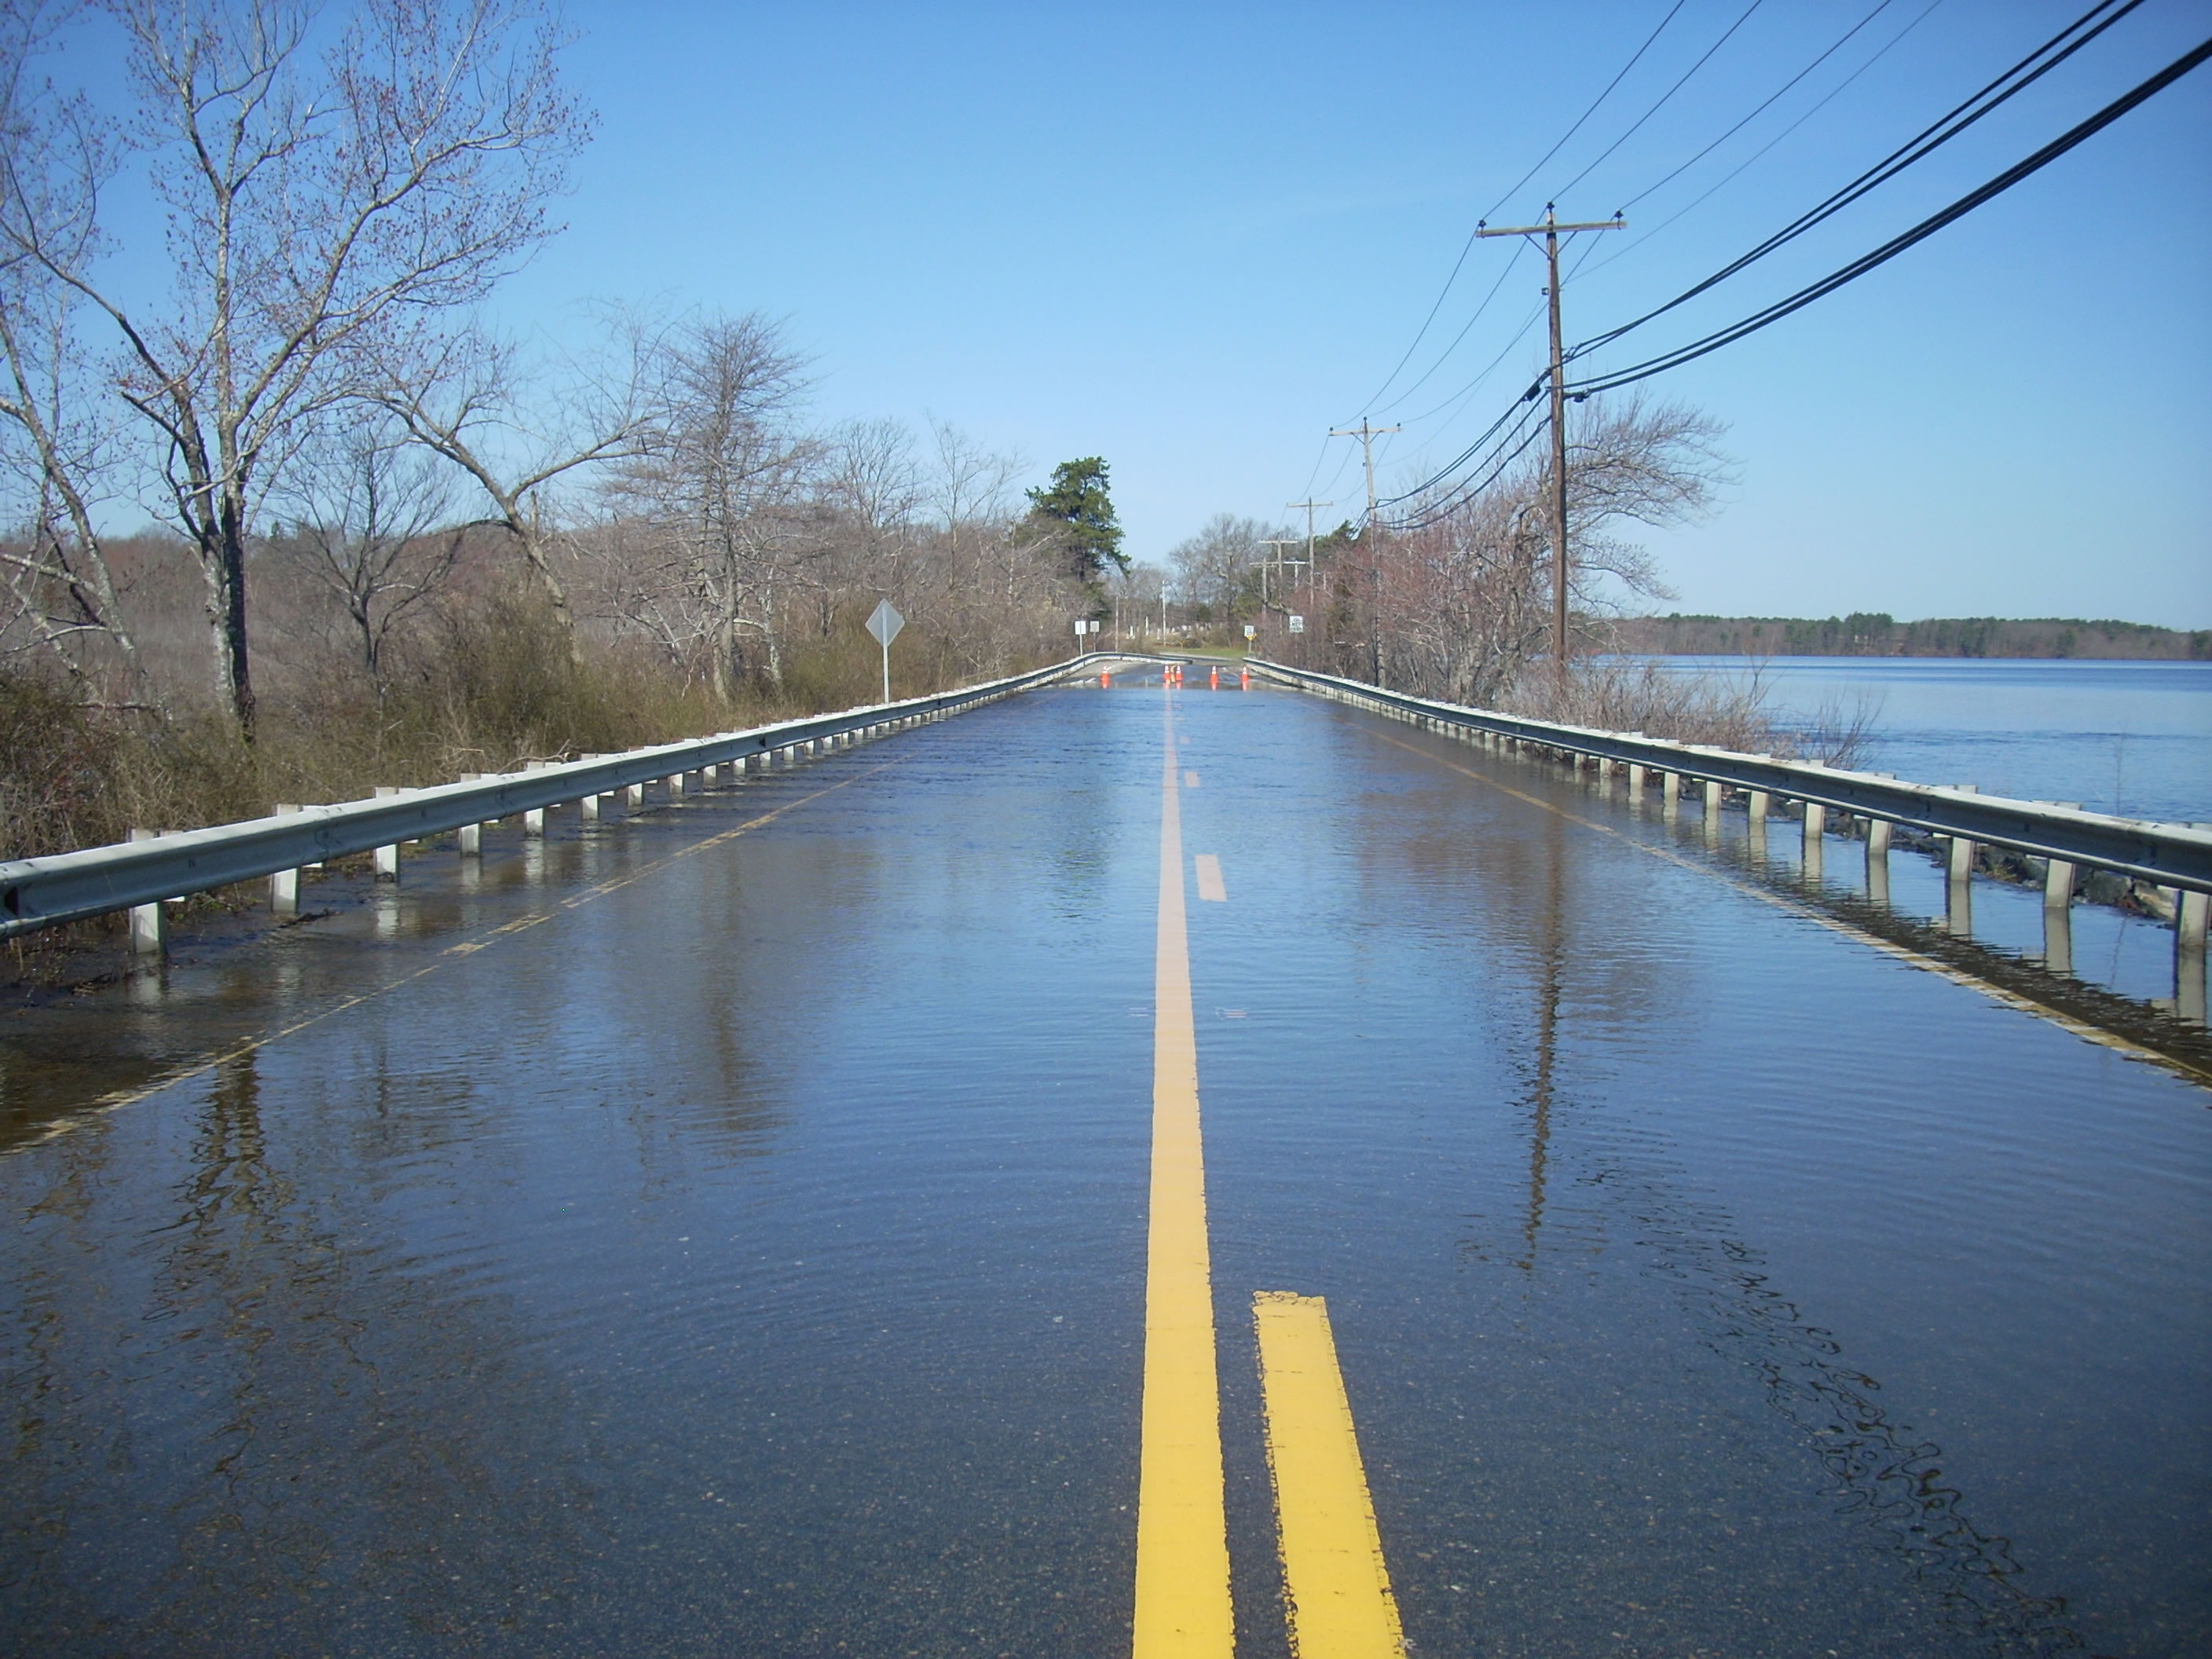 Photo shows 9 inches of water on road in Lakeville - Flood 2010